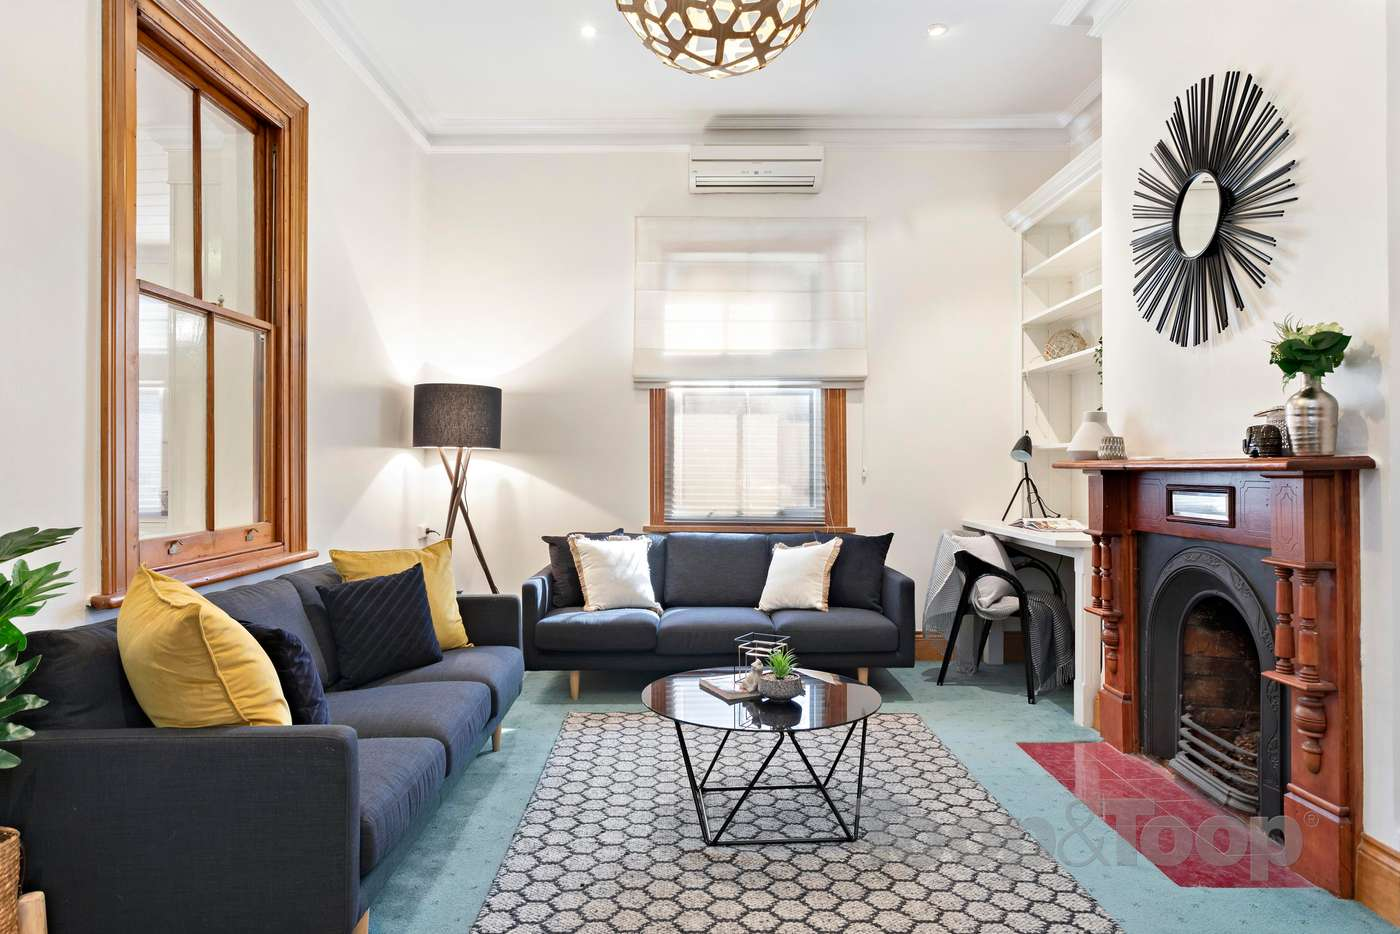 Sixth view of Homely house listing, 14 Eleventh Street, Bowden SA 5007